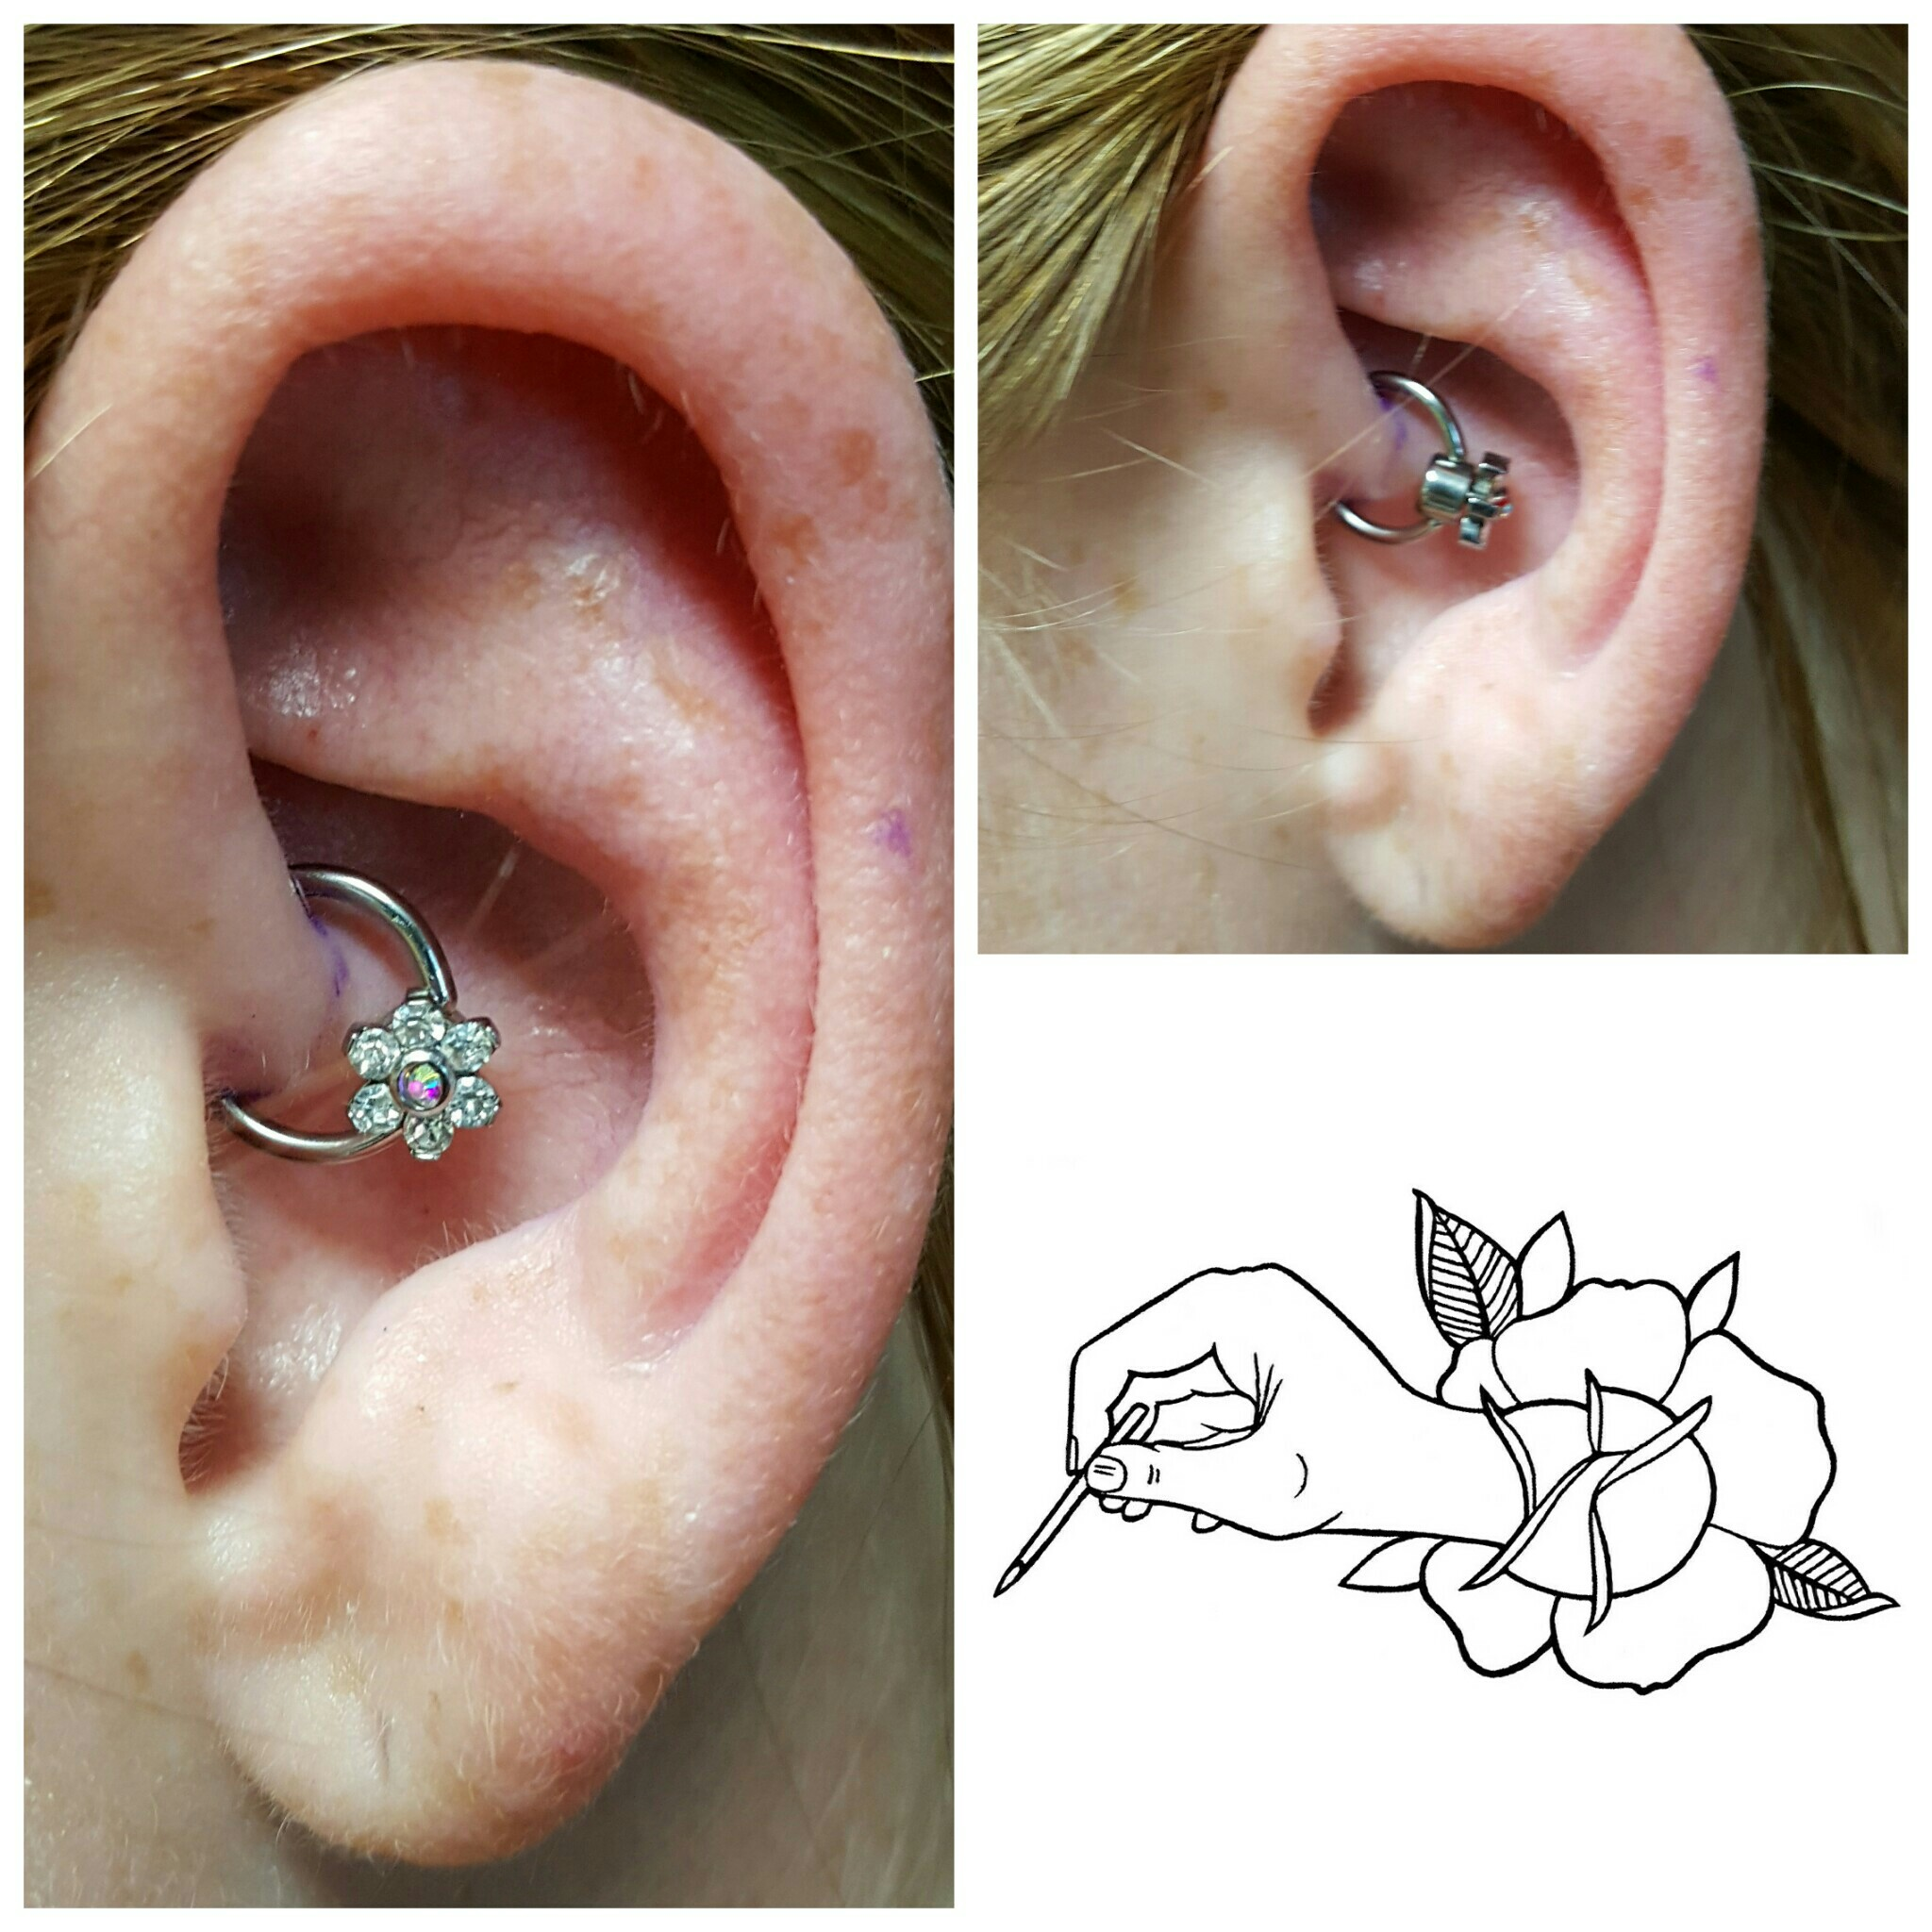 Daith piercing_ 16 gauge 5_16 captive bead ring and an added Prong Set Crystal Flower Internally Thr